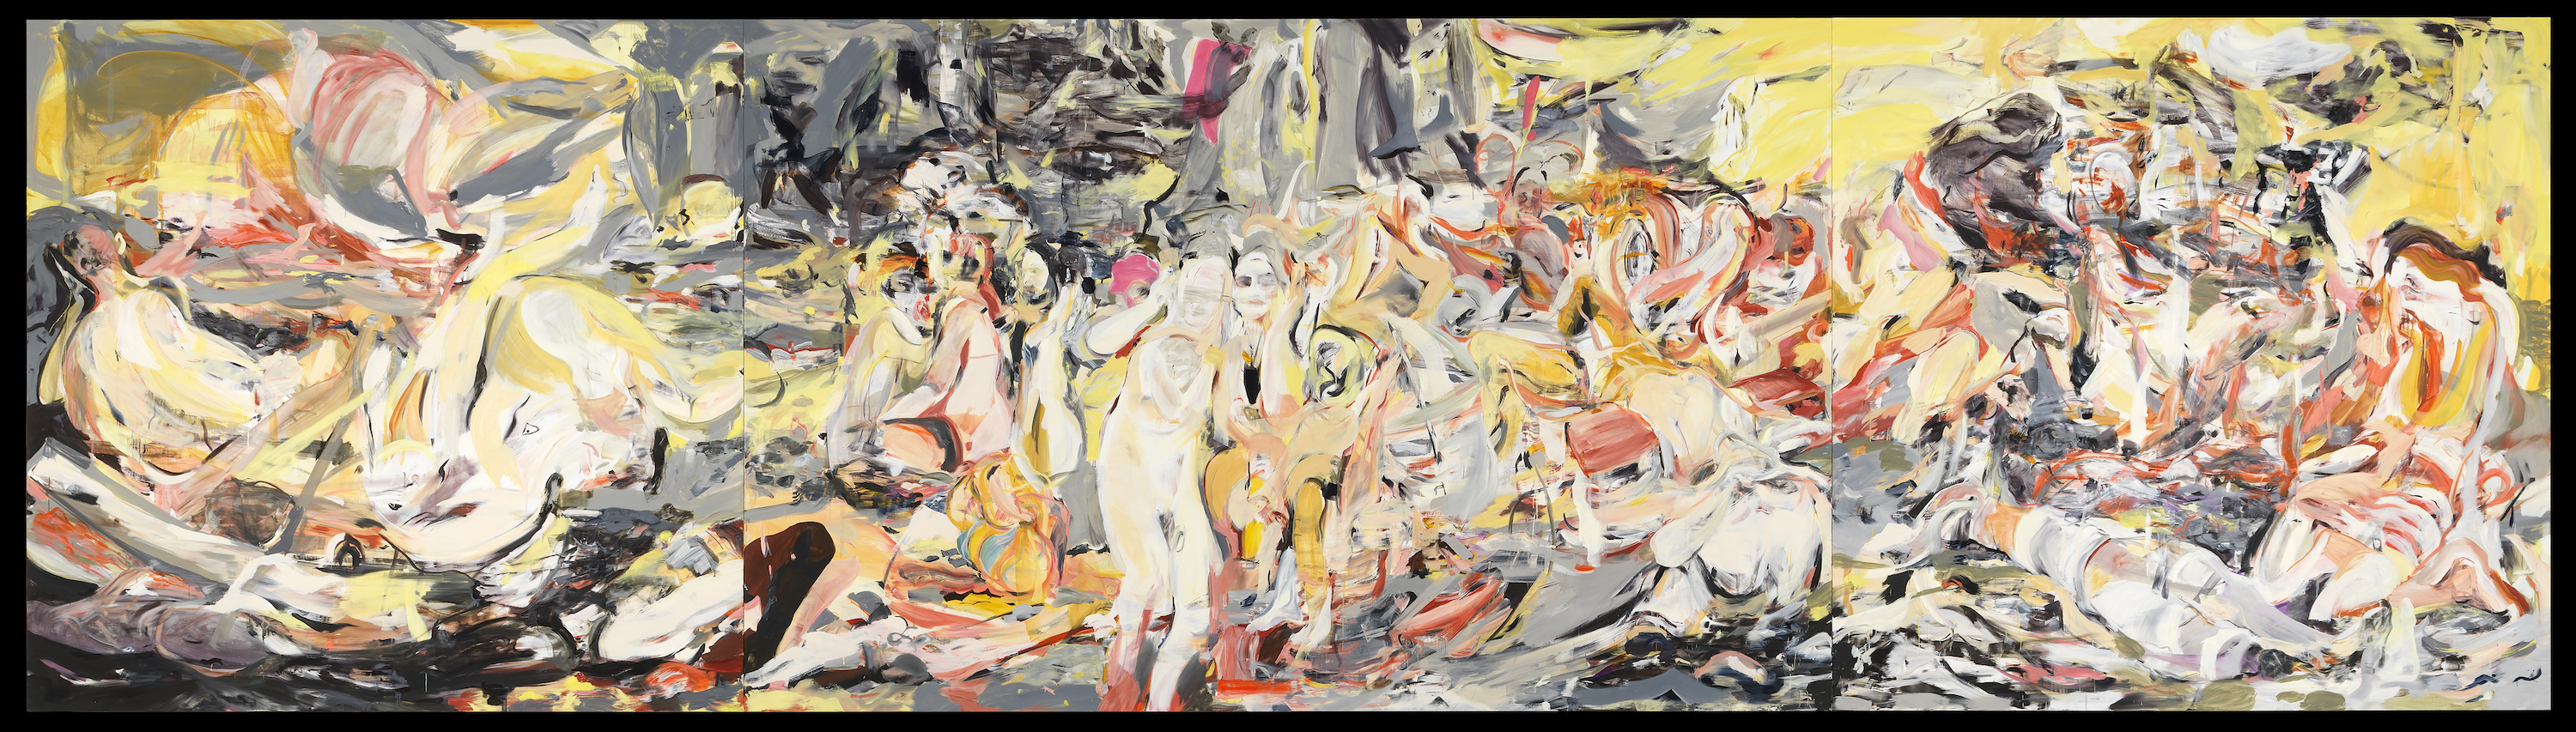 Cecily Brown Donates Behemoth Painting to Louisiana Museum in Denmark